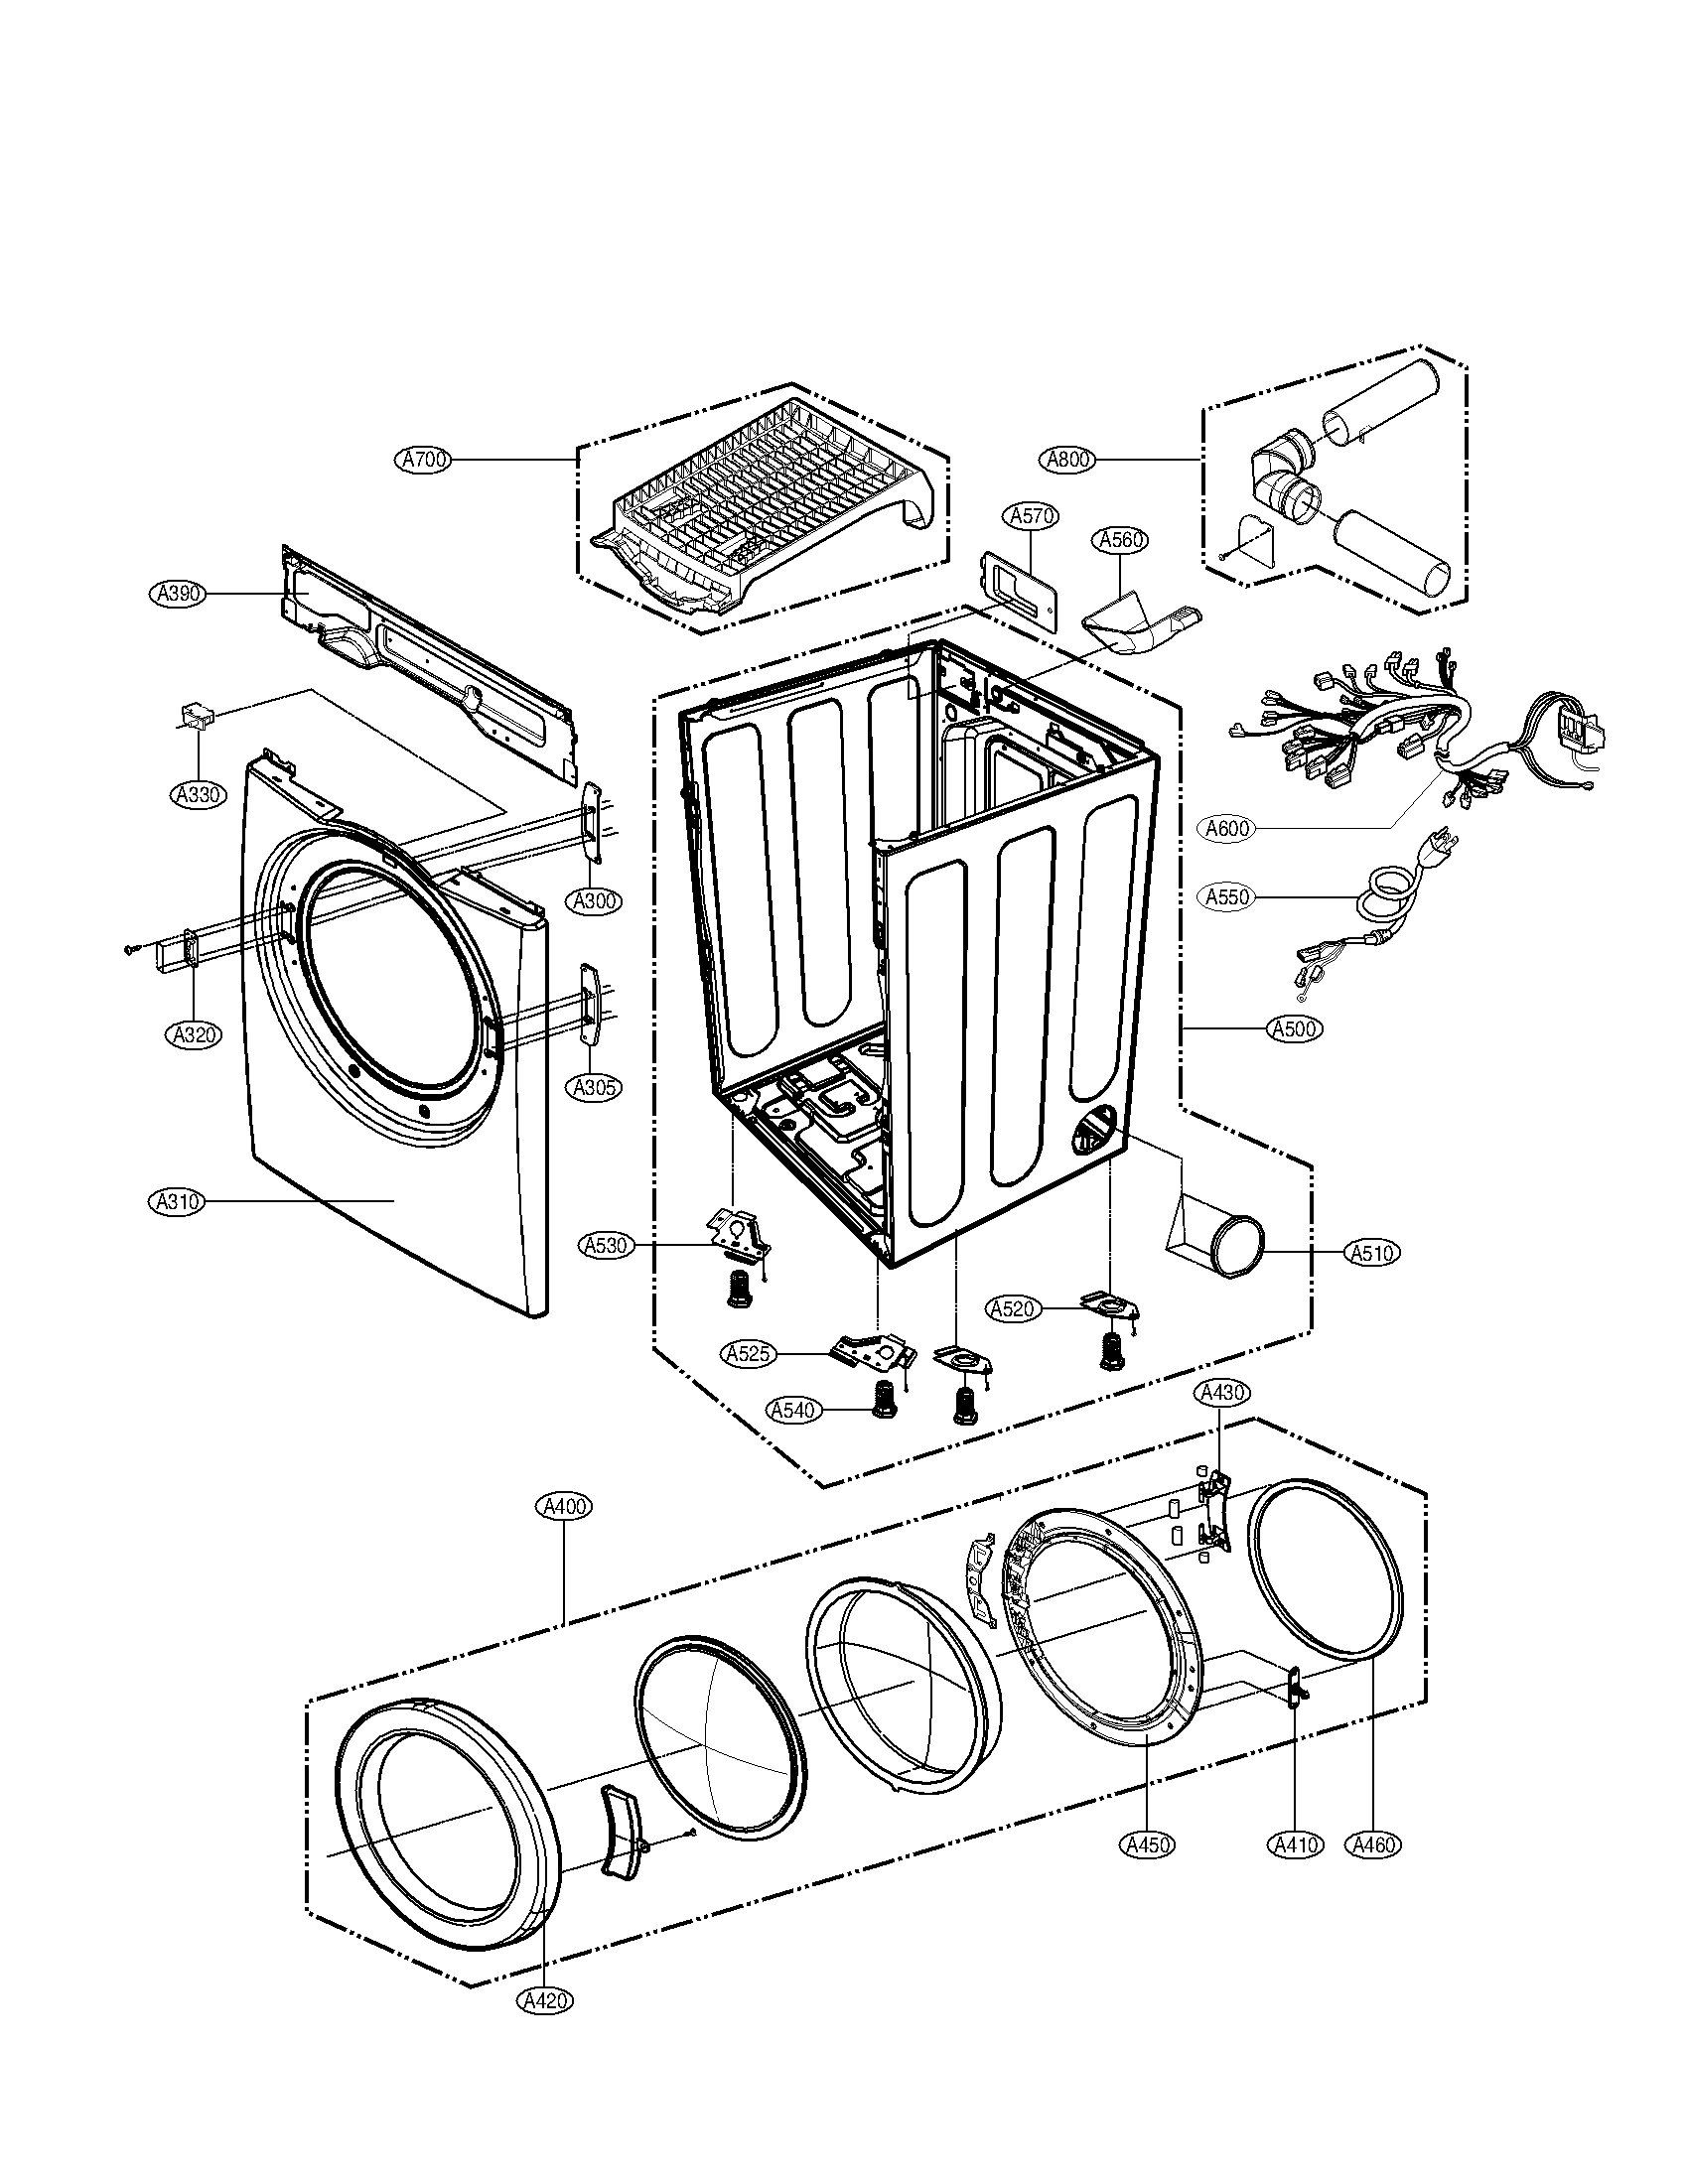 Lg model DLE3777W residential dryer genuine parts